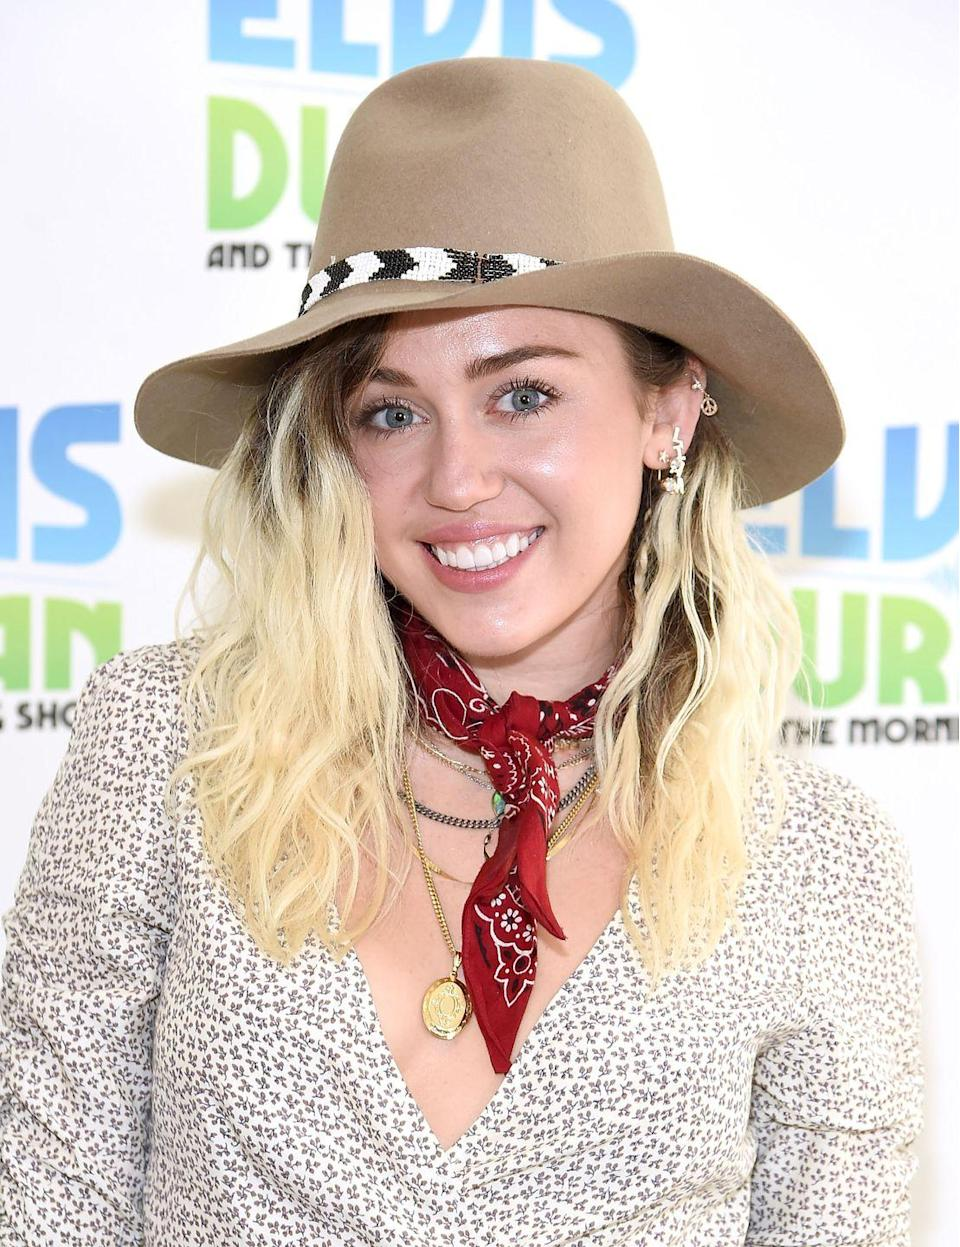 """<p>While Cyrus doesn't directly reference she hated her character or the show, she does talk about the negative affect it had on her. """"I was told for so long what a girl is supposed to be from being on that show,"""" Cyrus told <a href=""""https://www.marieclaire.com/celebrity/news/a15514/miley-cyrus-marie-claire-september-cover/"""" rel=""""nofollow noopener"""" target=""""_blank"""" data-ylk=""""slk:Marie Claire"""" class=""""link rapid-noclick-resp""""><em>Marie Claire</em></a> in 2015. """"I was made to look like someone that I wasn't, which probably caused some body dysmorphia because I had been made pretty every day for so long, and then when I wasn't on that show, it was like, Who the f--k am I?""""</p>"""